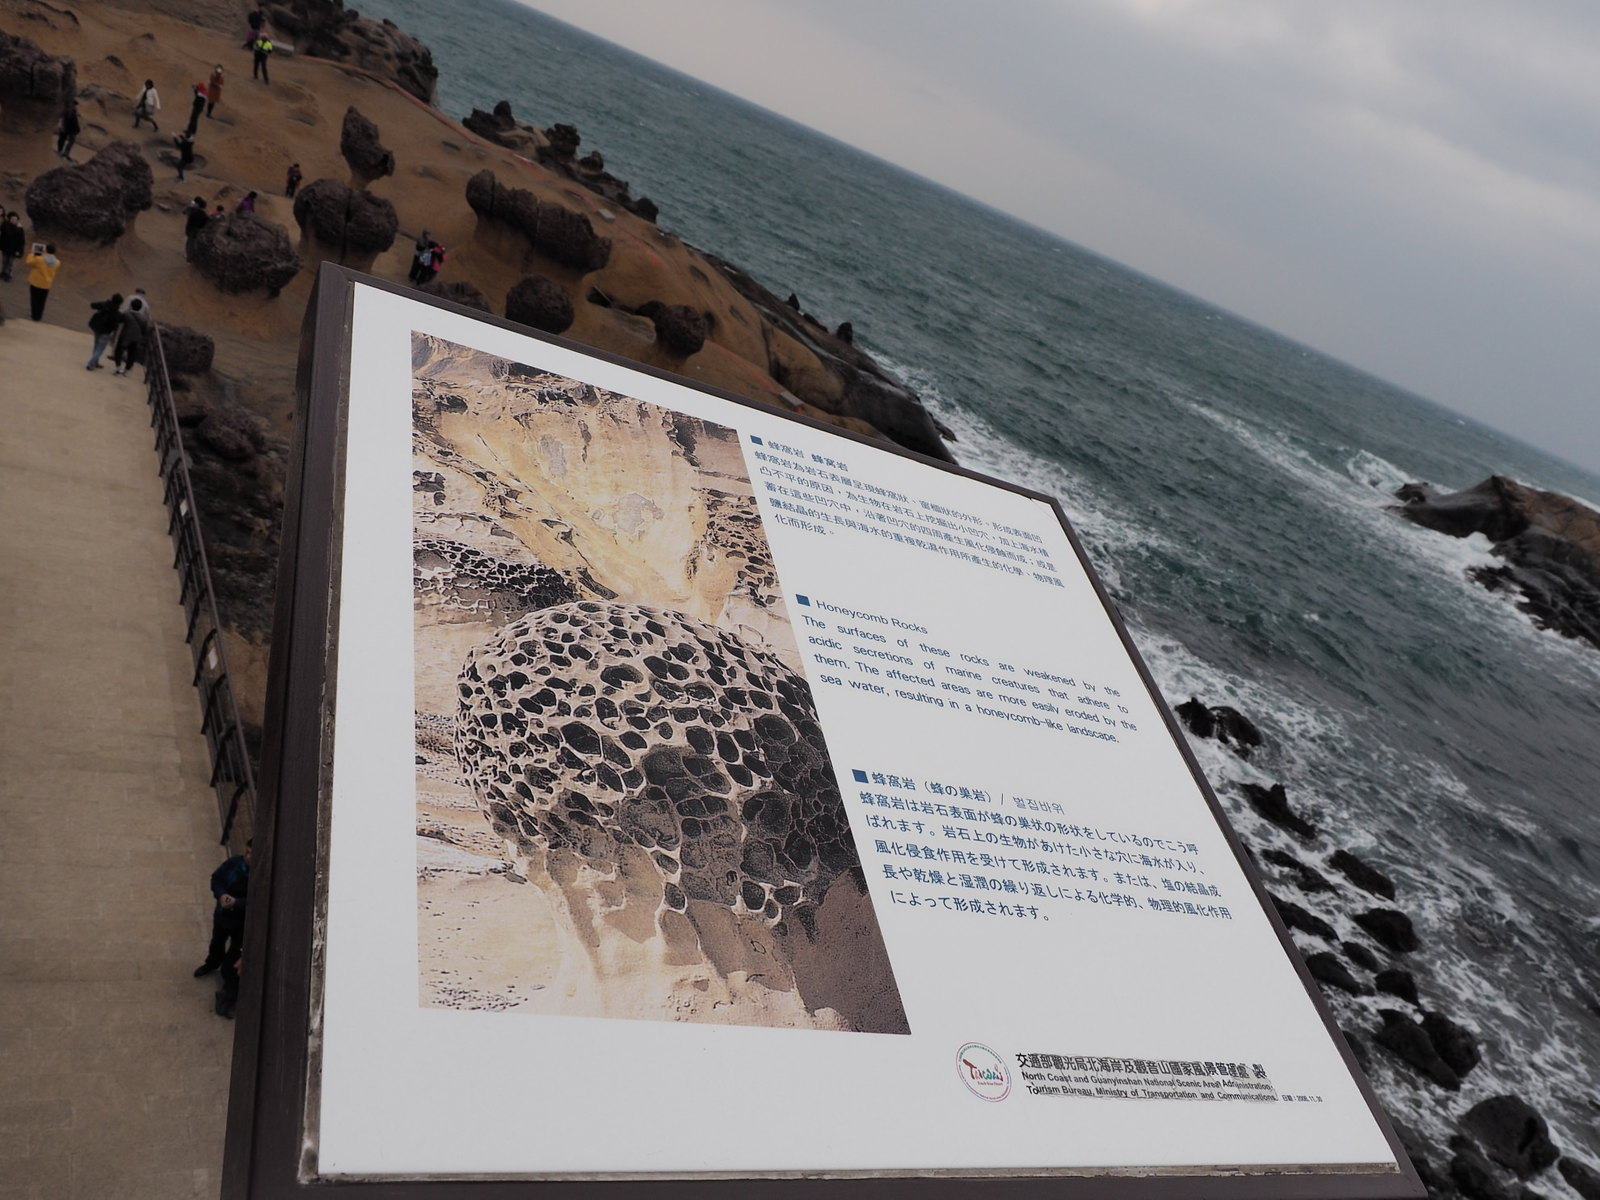 Explanation of the honeycomb-like shape on the rocks at Yehliu Geopark